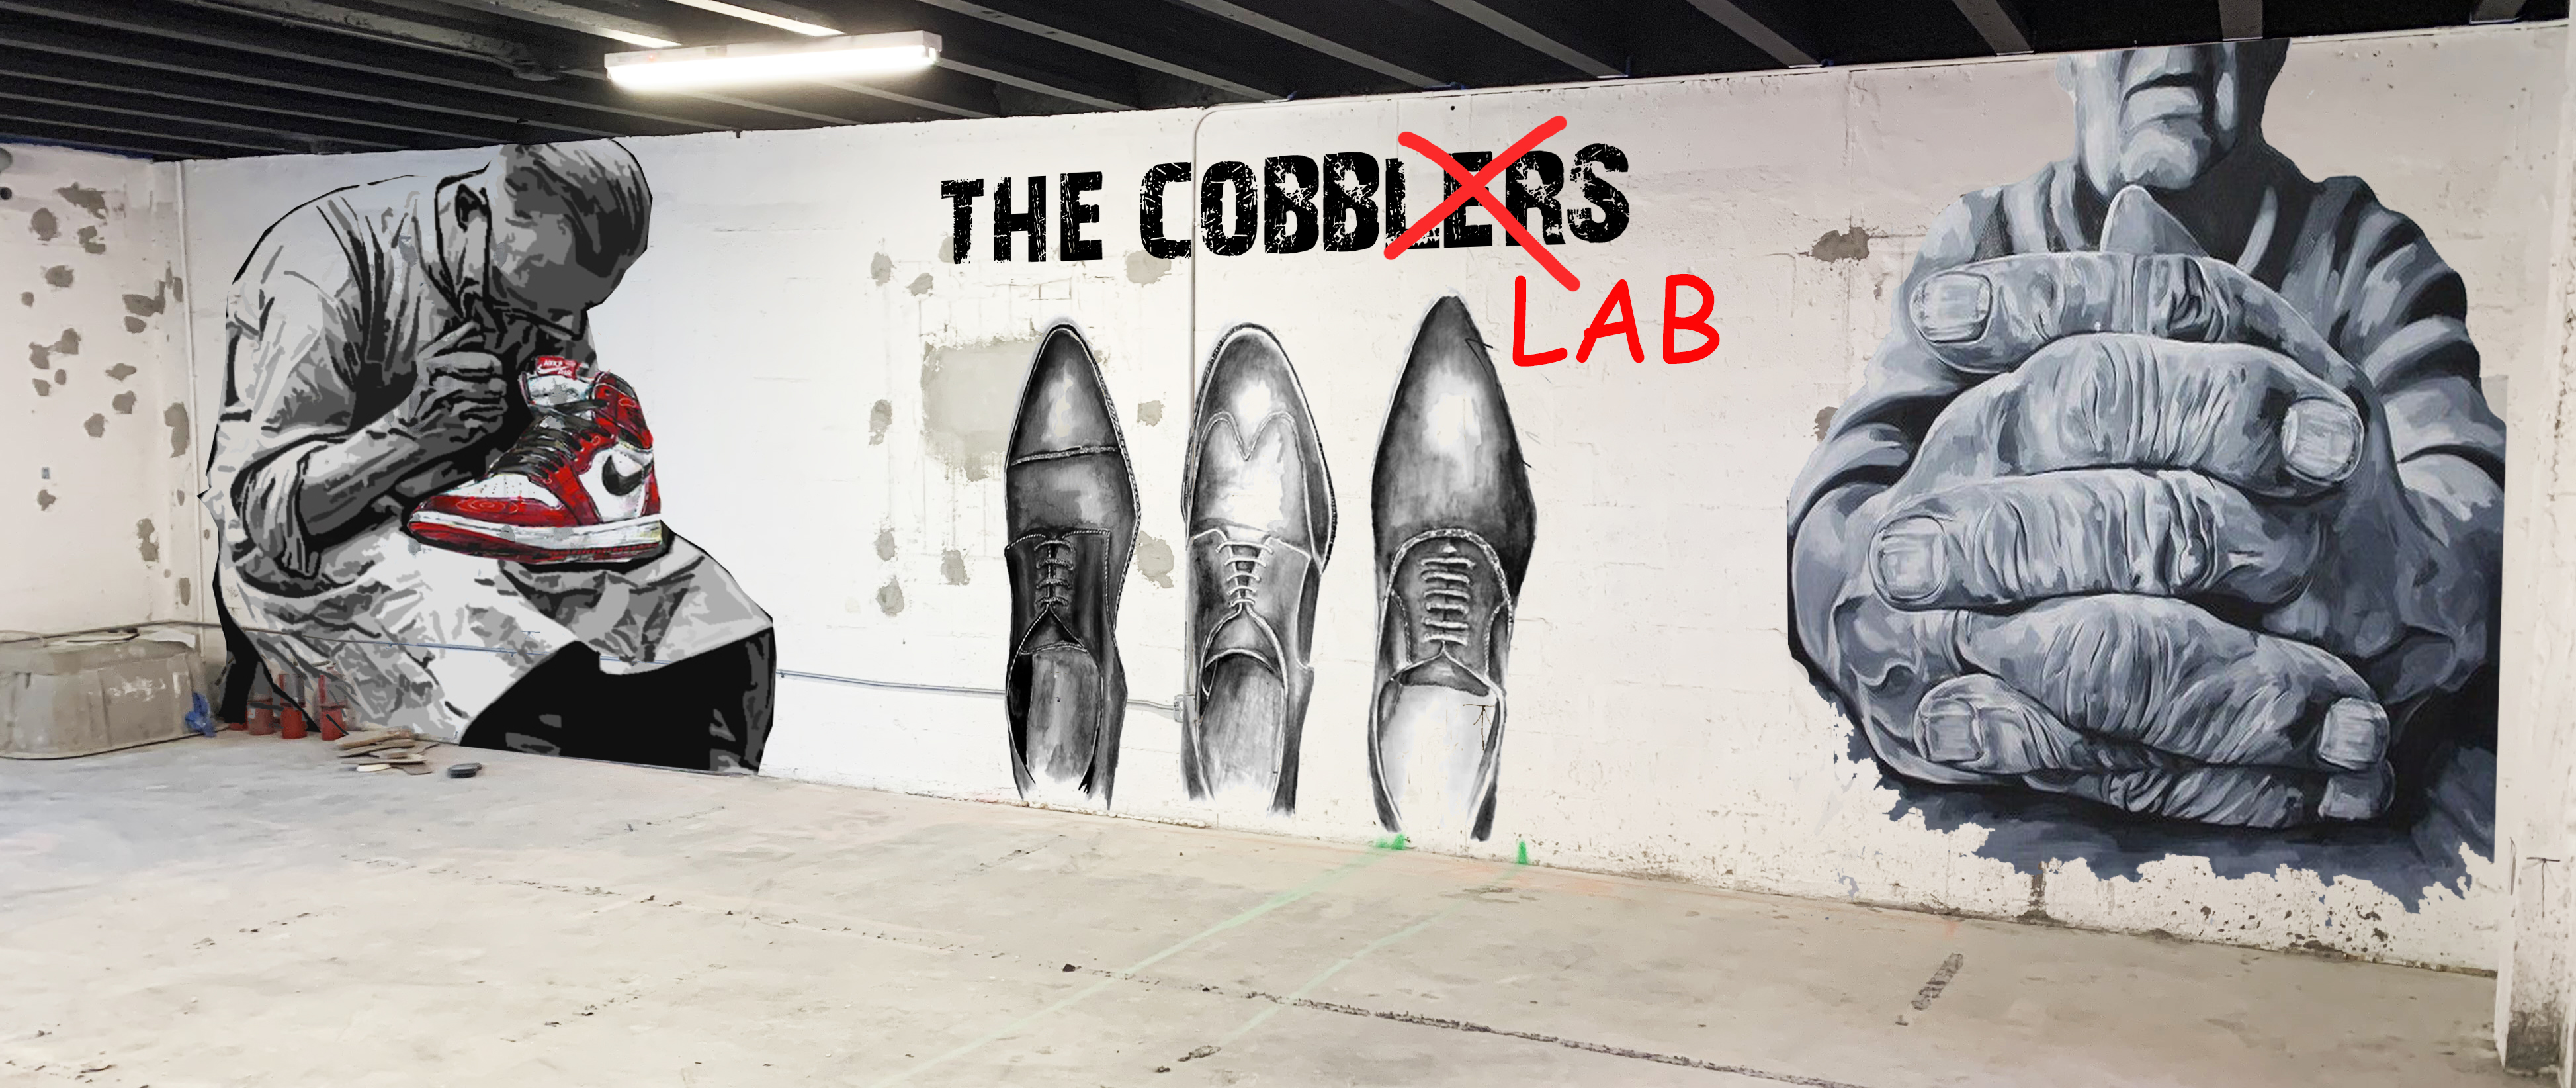 wall cobblers LAB